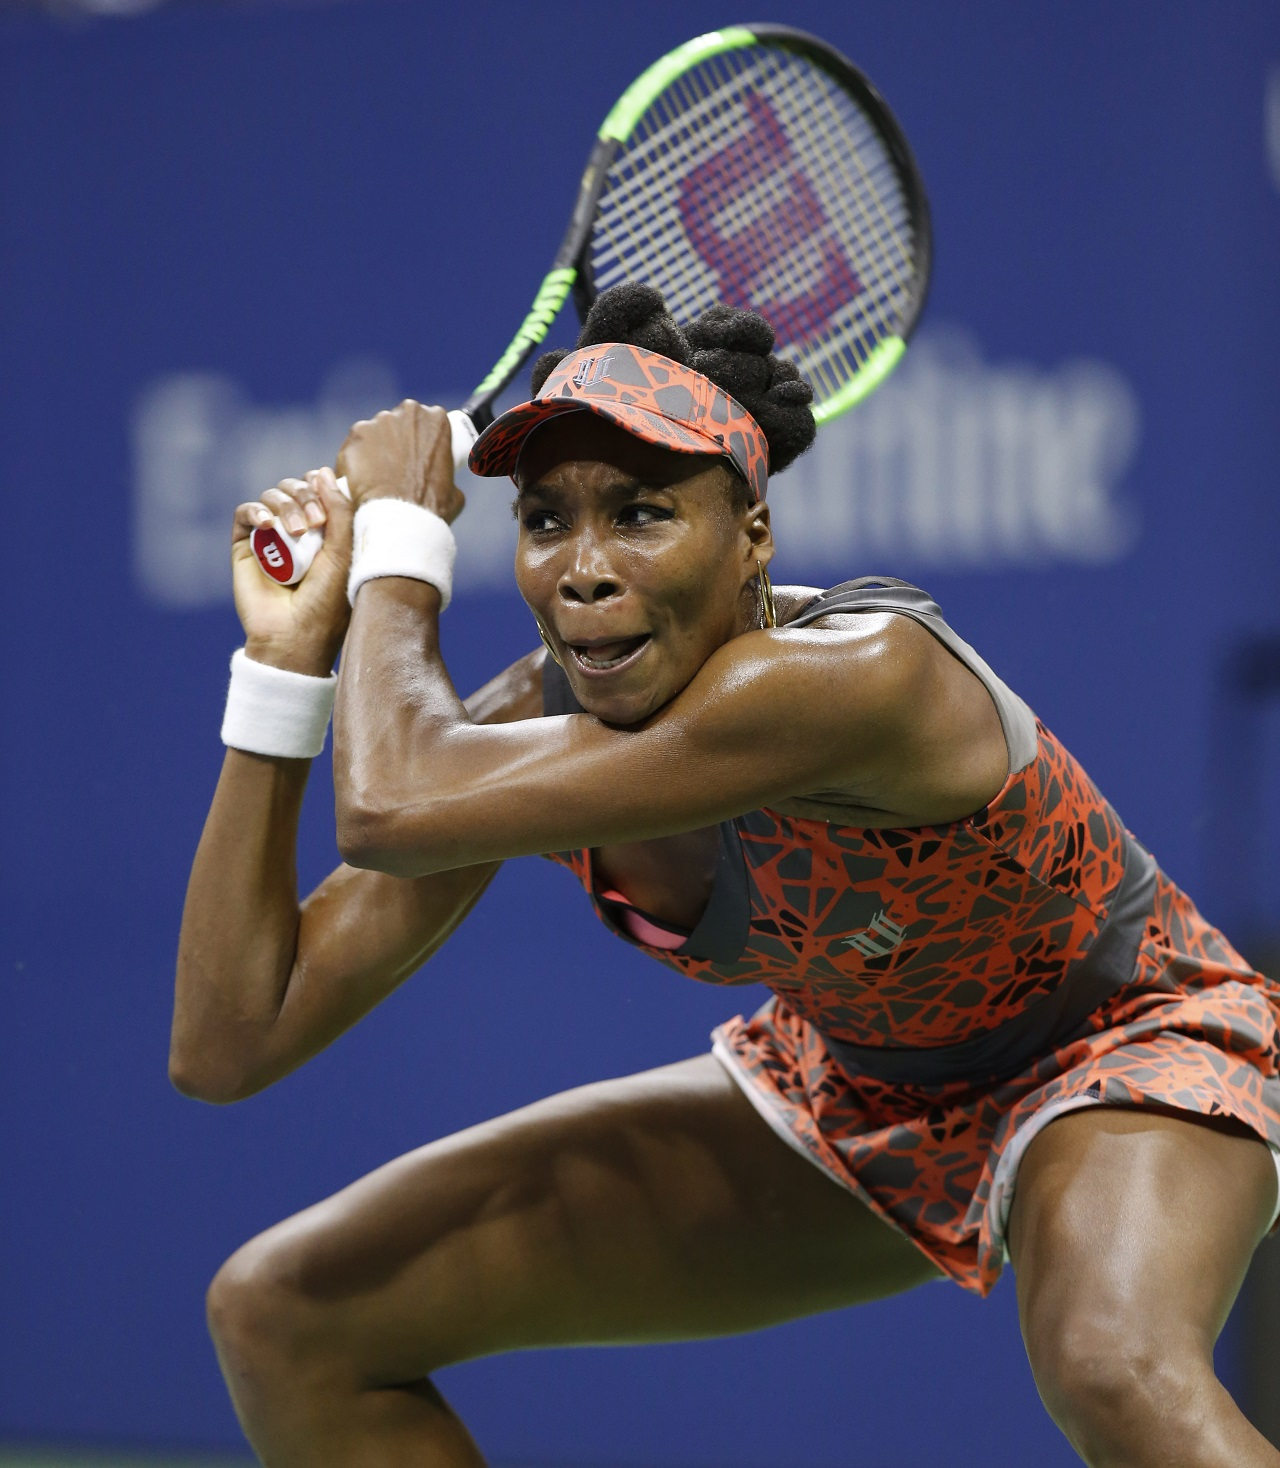 Venus Williams, of the United States, follows through on a return to Petra Kvitova, of the Czech Republic, during the quarterfinals of the U.S. Open tennis tournament in New York, Tuesday, Sept. 5, 2017.